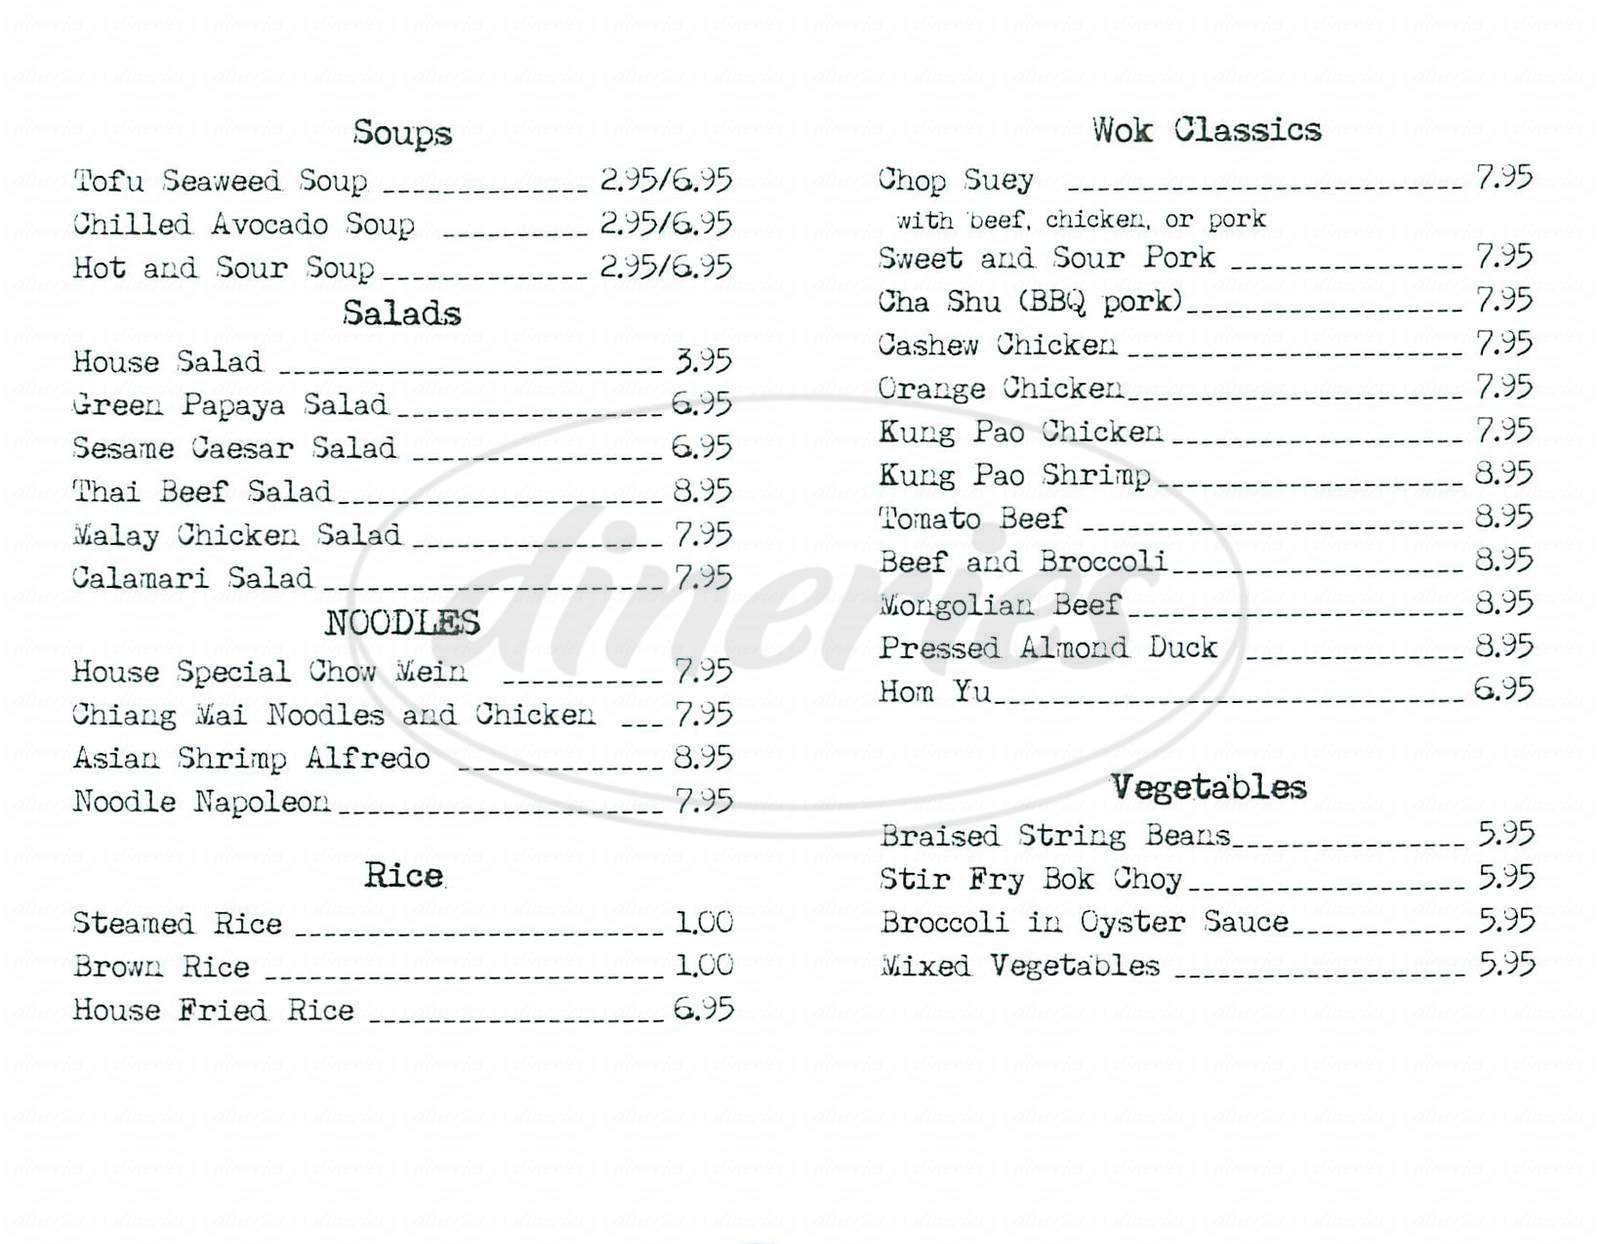 menu for Chop Suey Café & Lounge